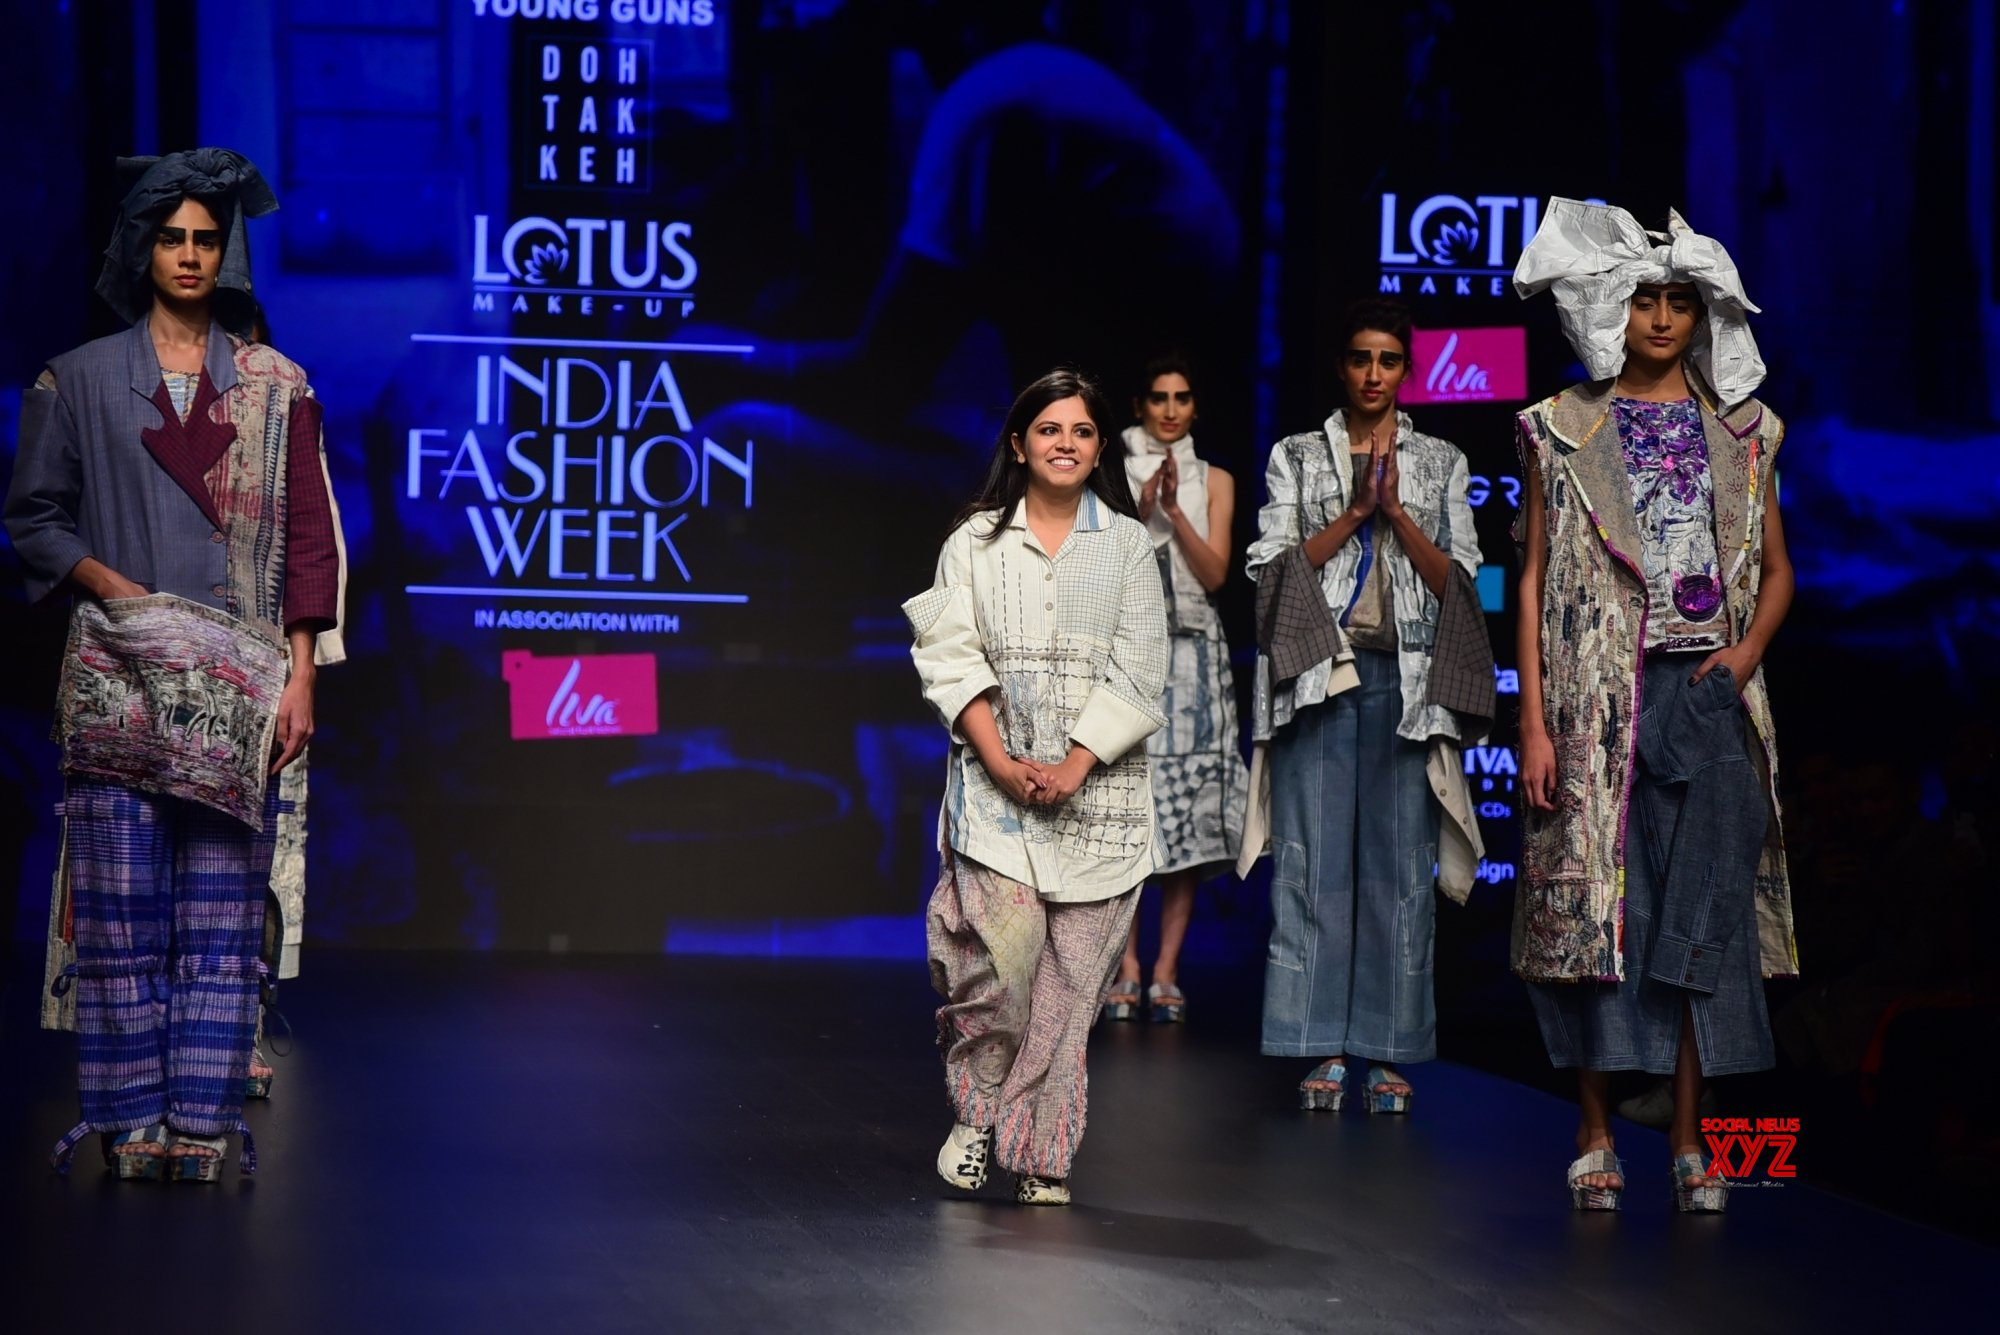 New Delhi: Lotus India Fashion Week - Day 4 - Doh Tak Keh (Batch - 2) #Gallery